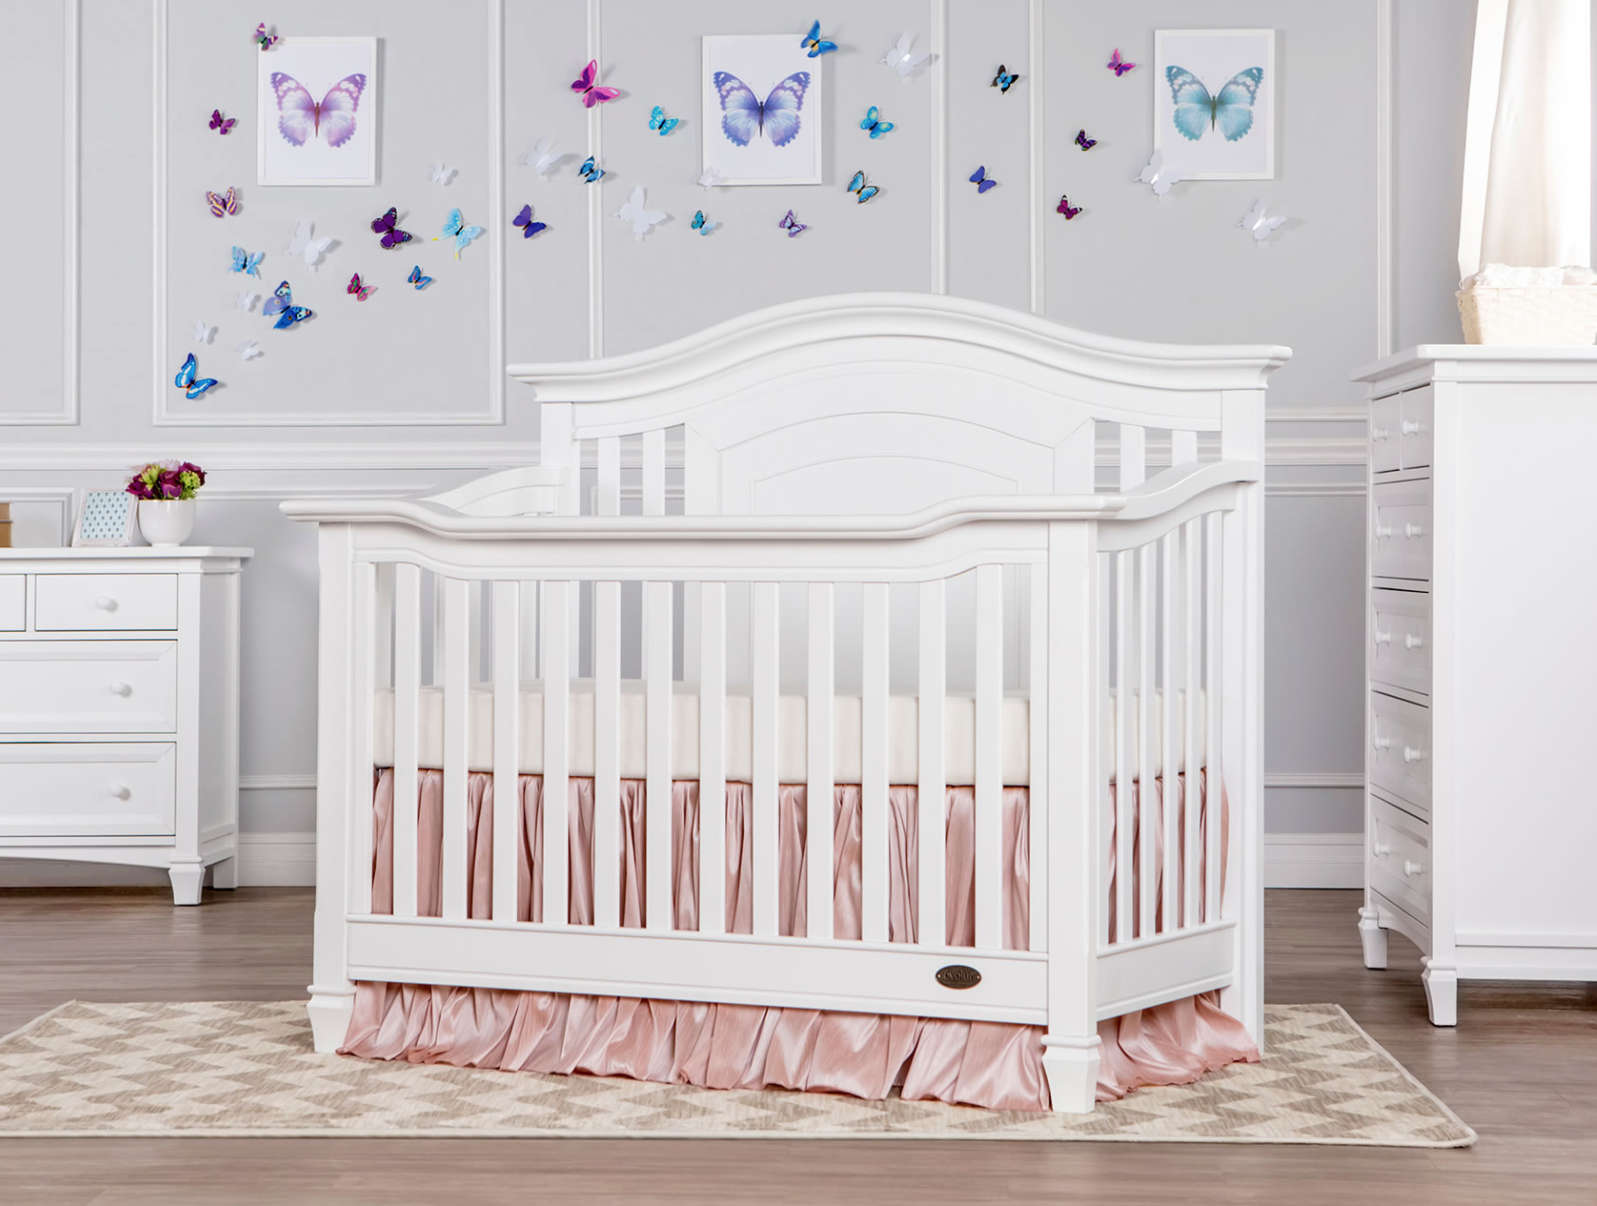 We Carry Beautiful And Sturdy Solid Wood Baby Cribs View Our Baby Cribs In Los Angeles And Enquire About One Of Our Quality Cribs Convertible Crib Evolur Crib